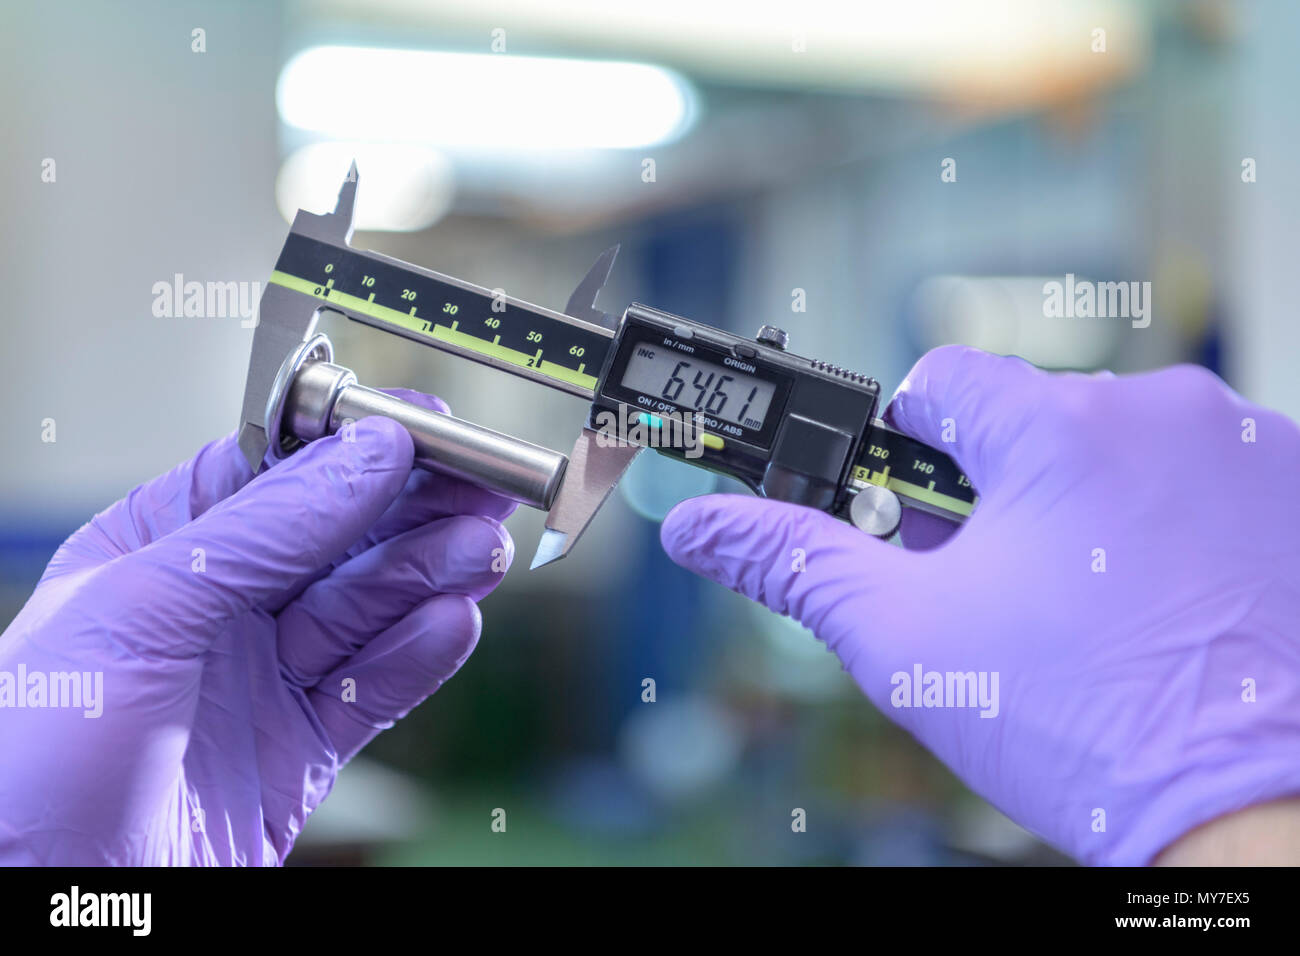 Engineer measuring pressed metal part in metal pressing factory - Stock Image